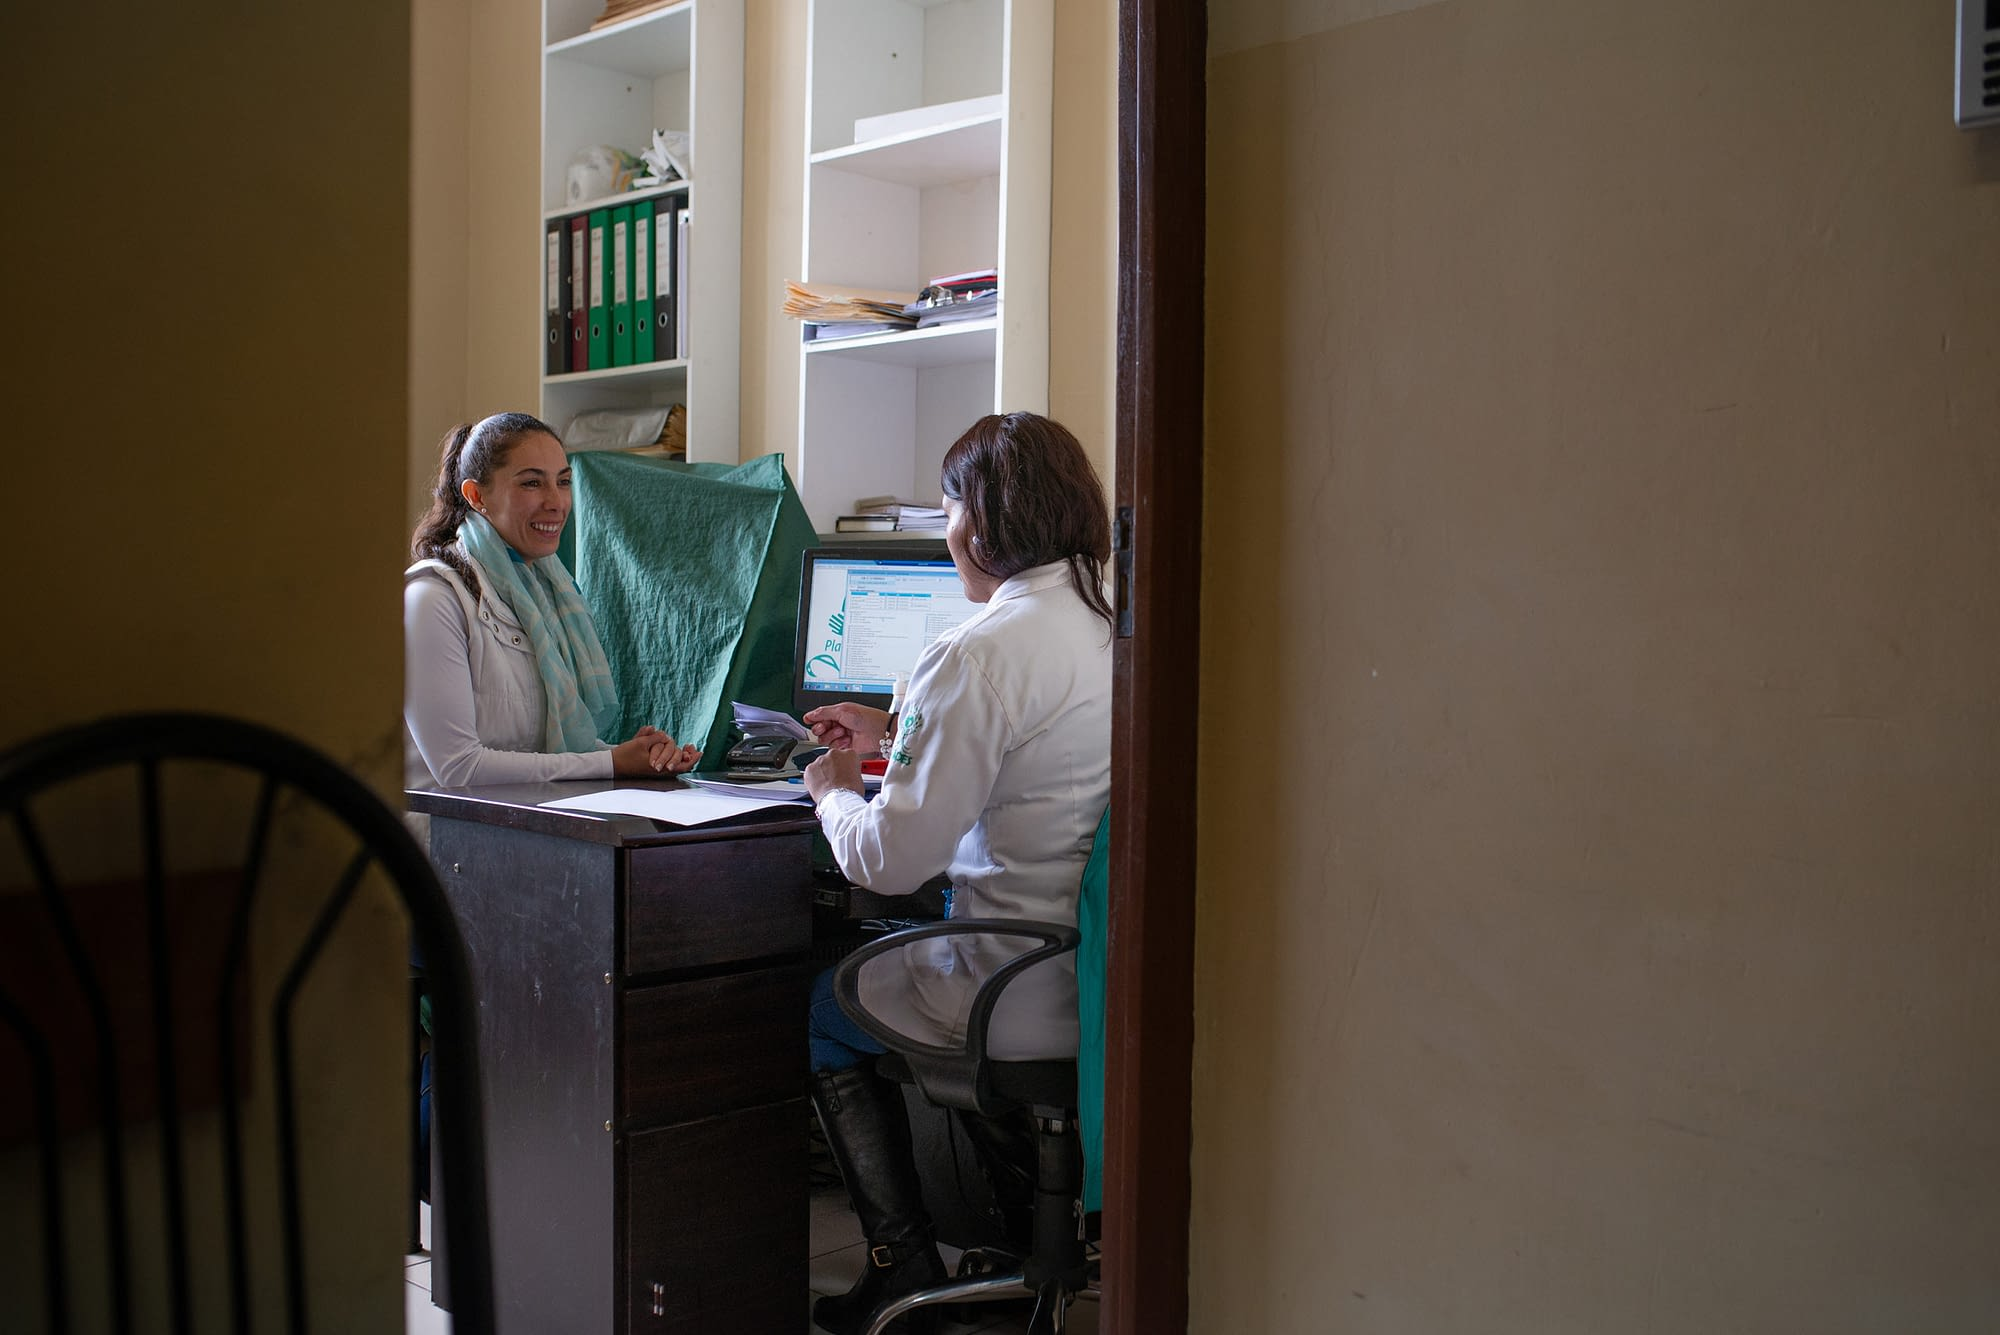 Two woman discussing in hospital setting